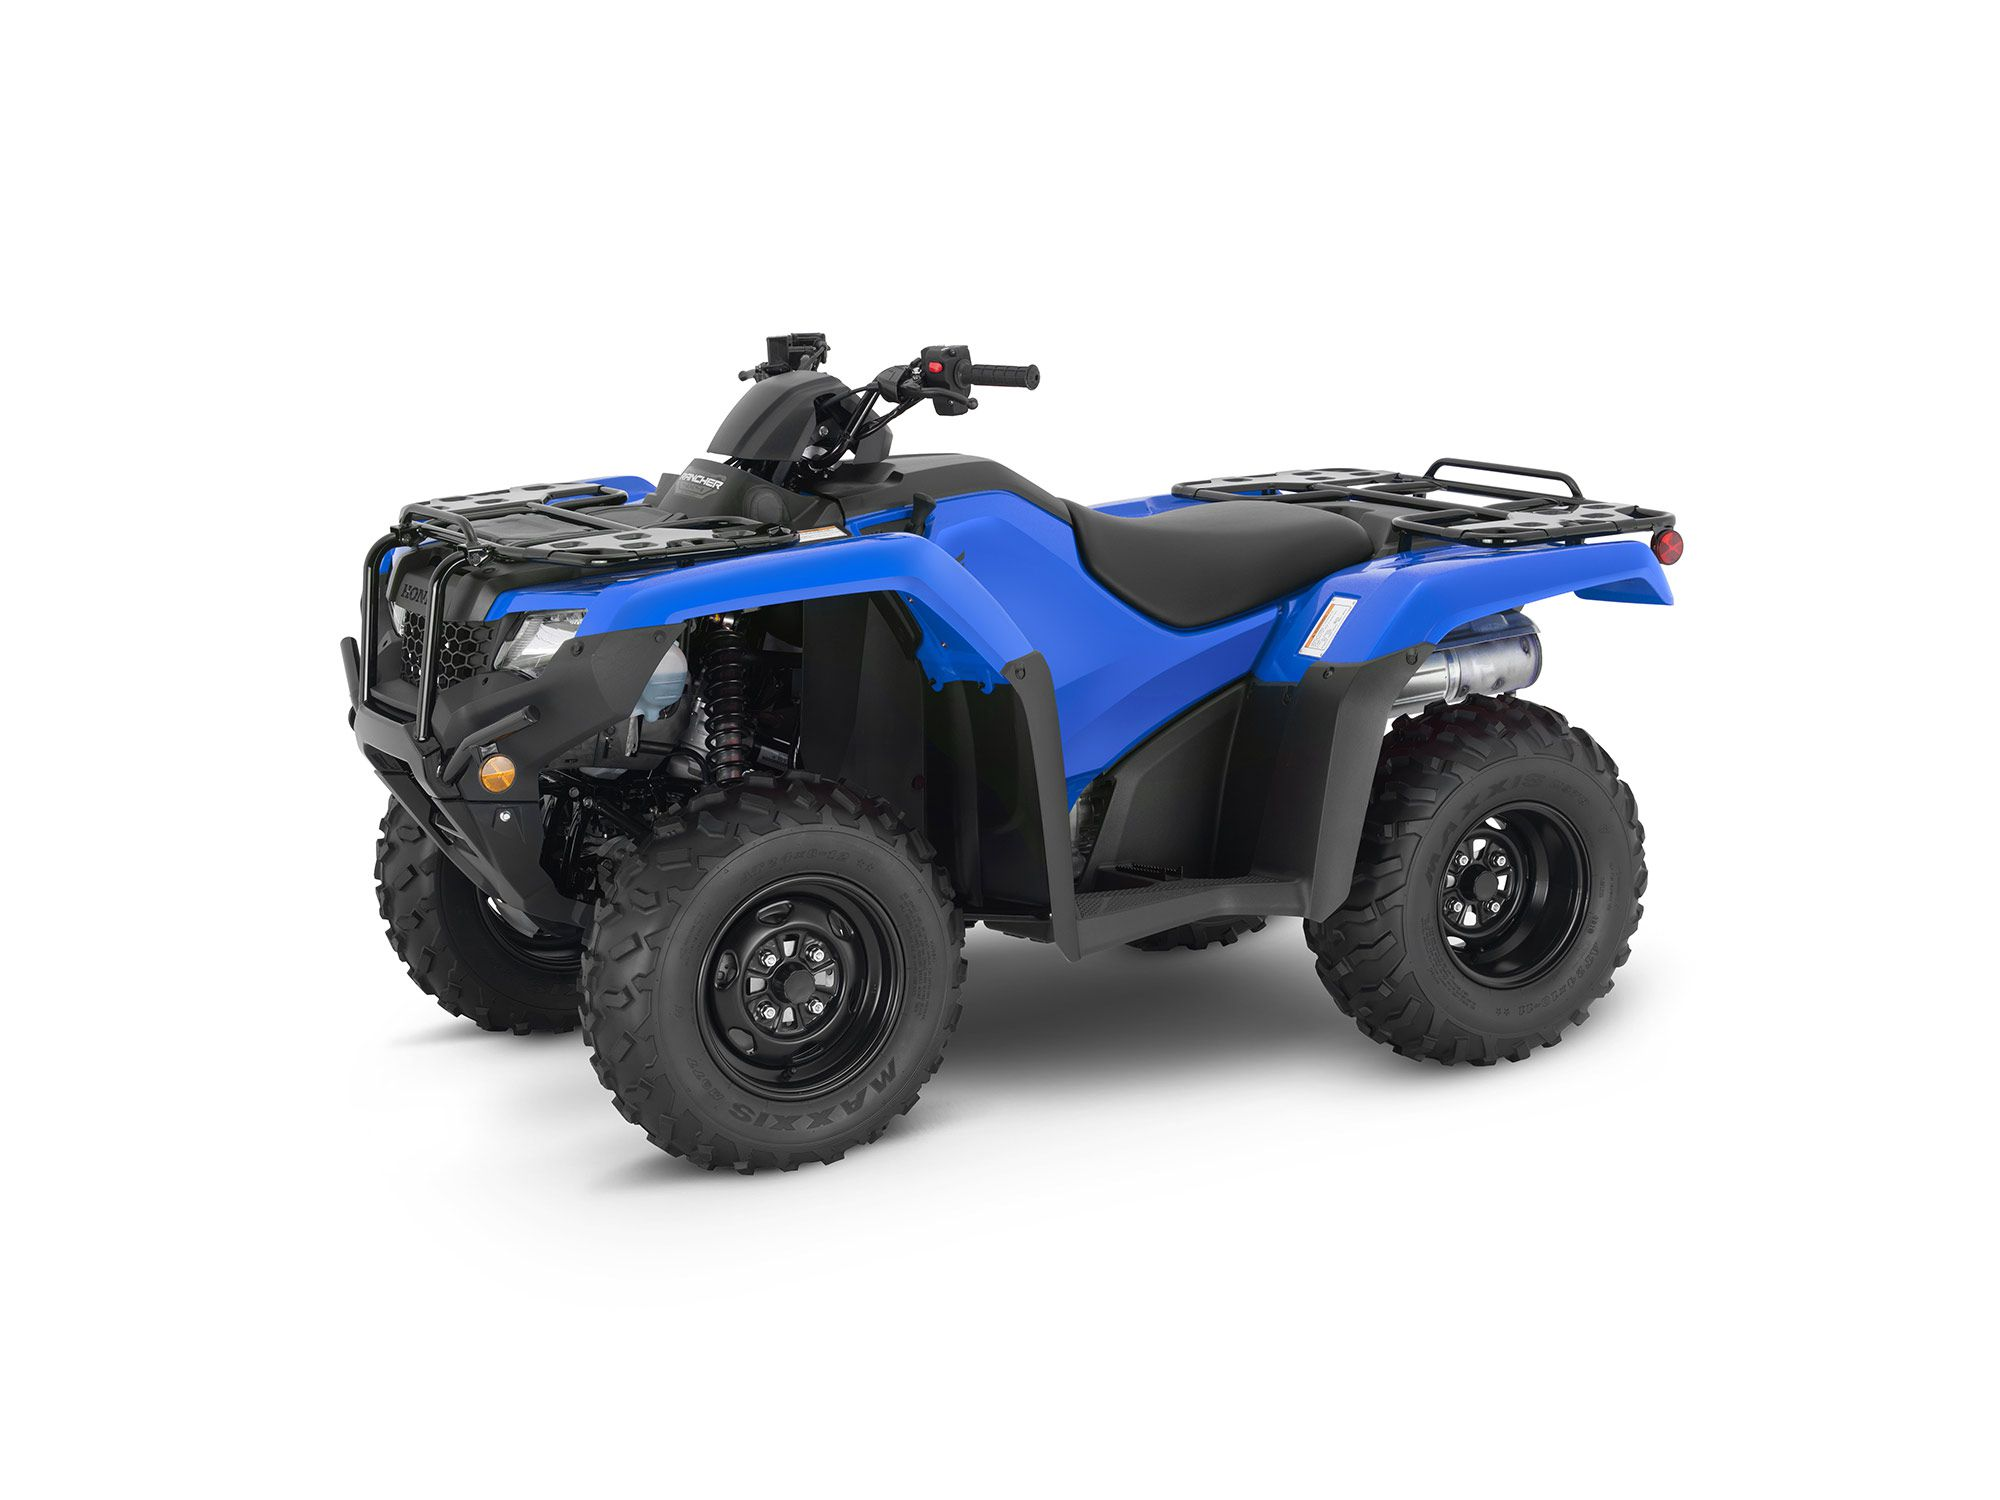 2022 FourTrax Rancher 4x4 Automatic DCT EPS in Reactor Blue.